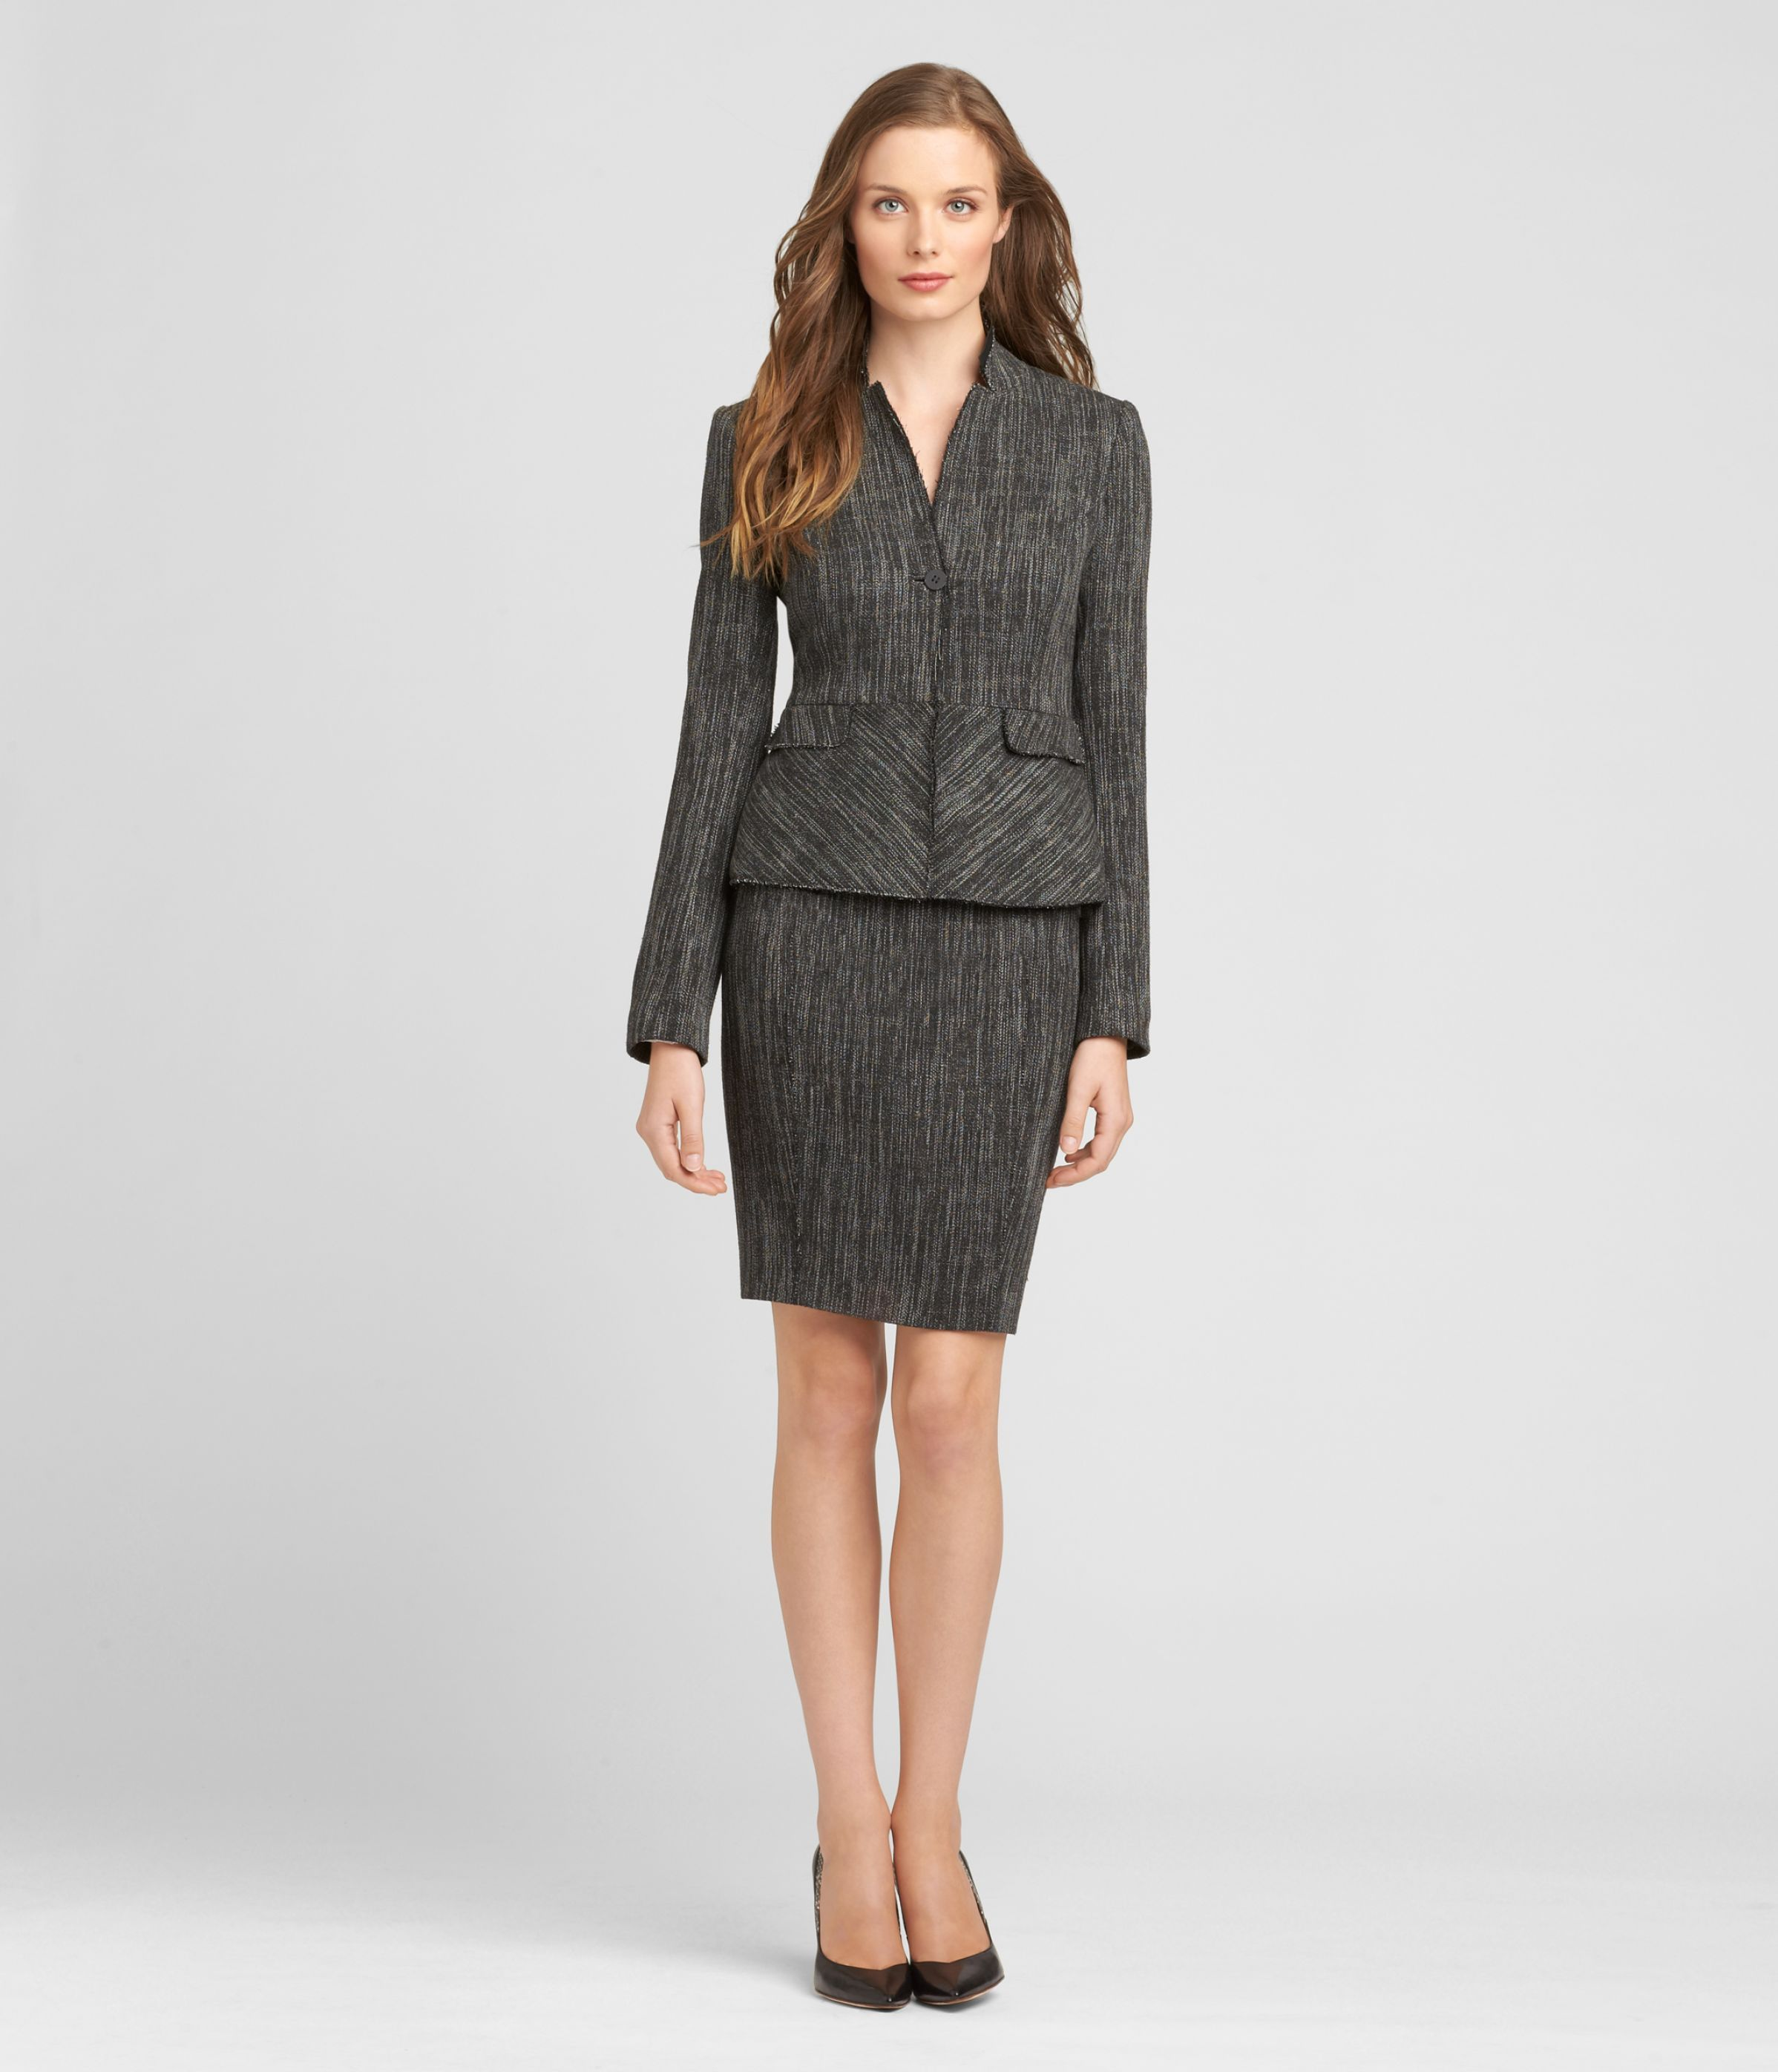 BLACK & WHITE TWEED SKIRT SUIT